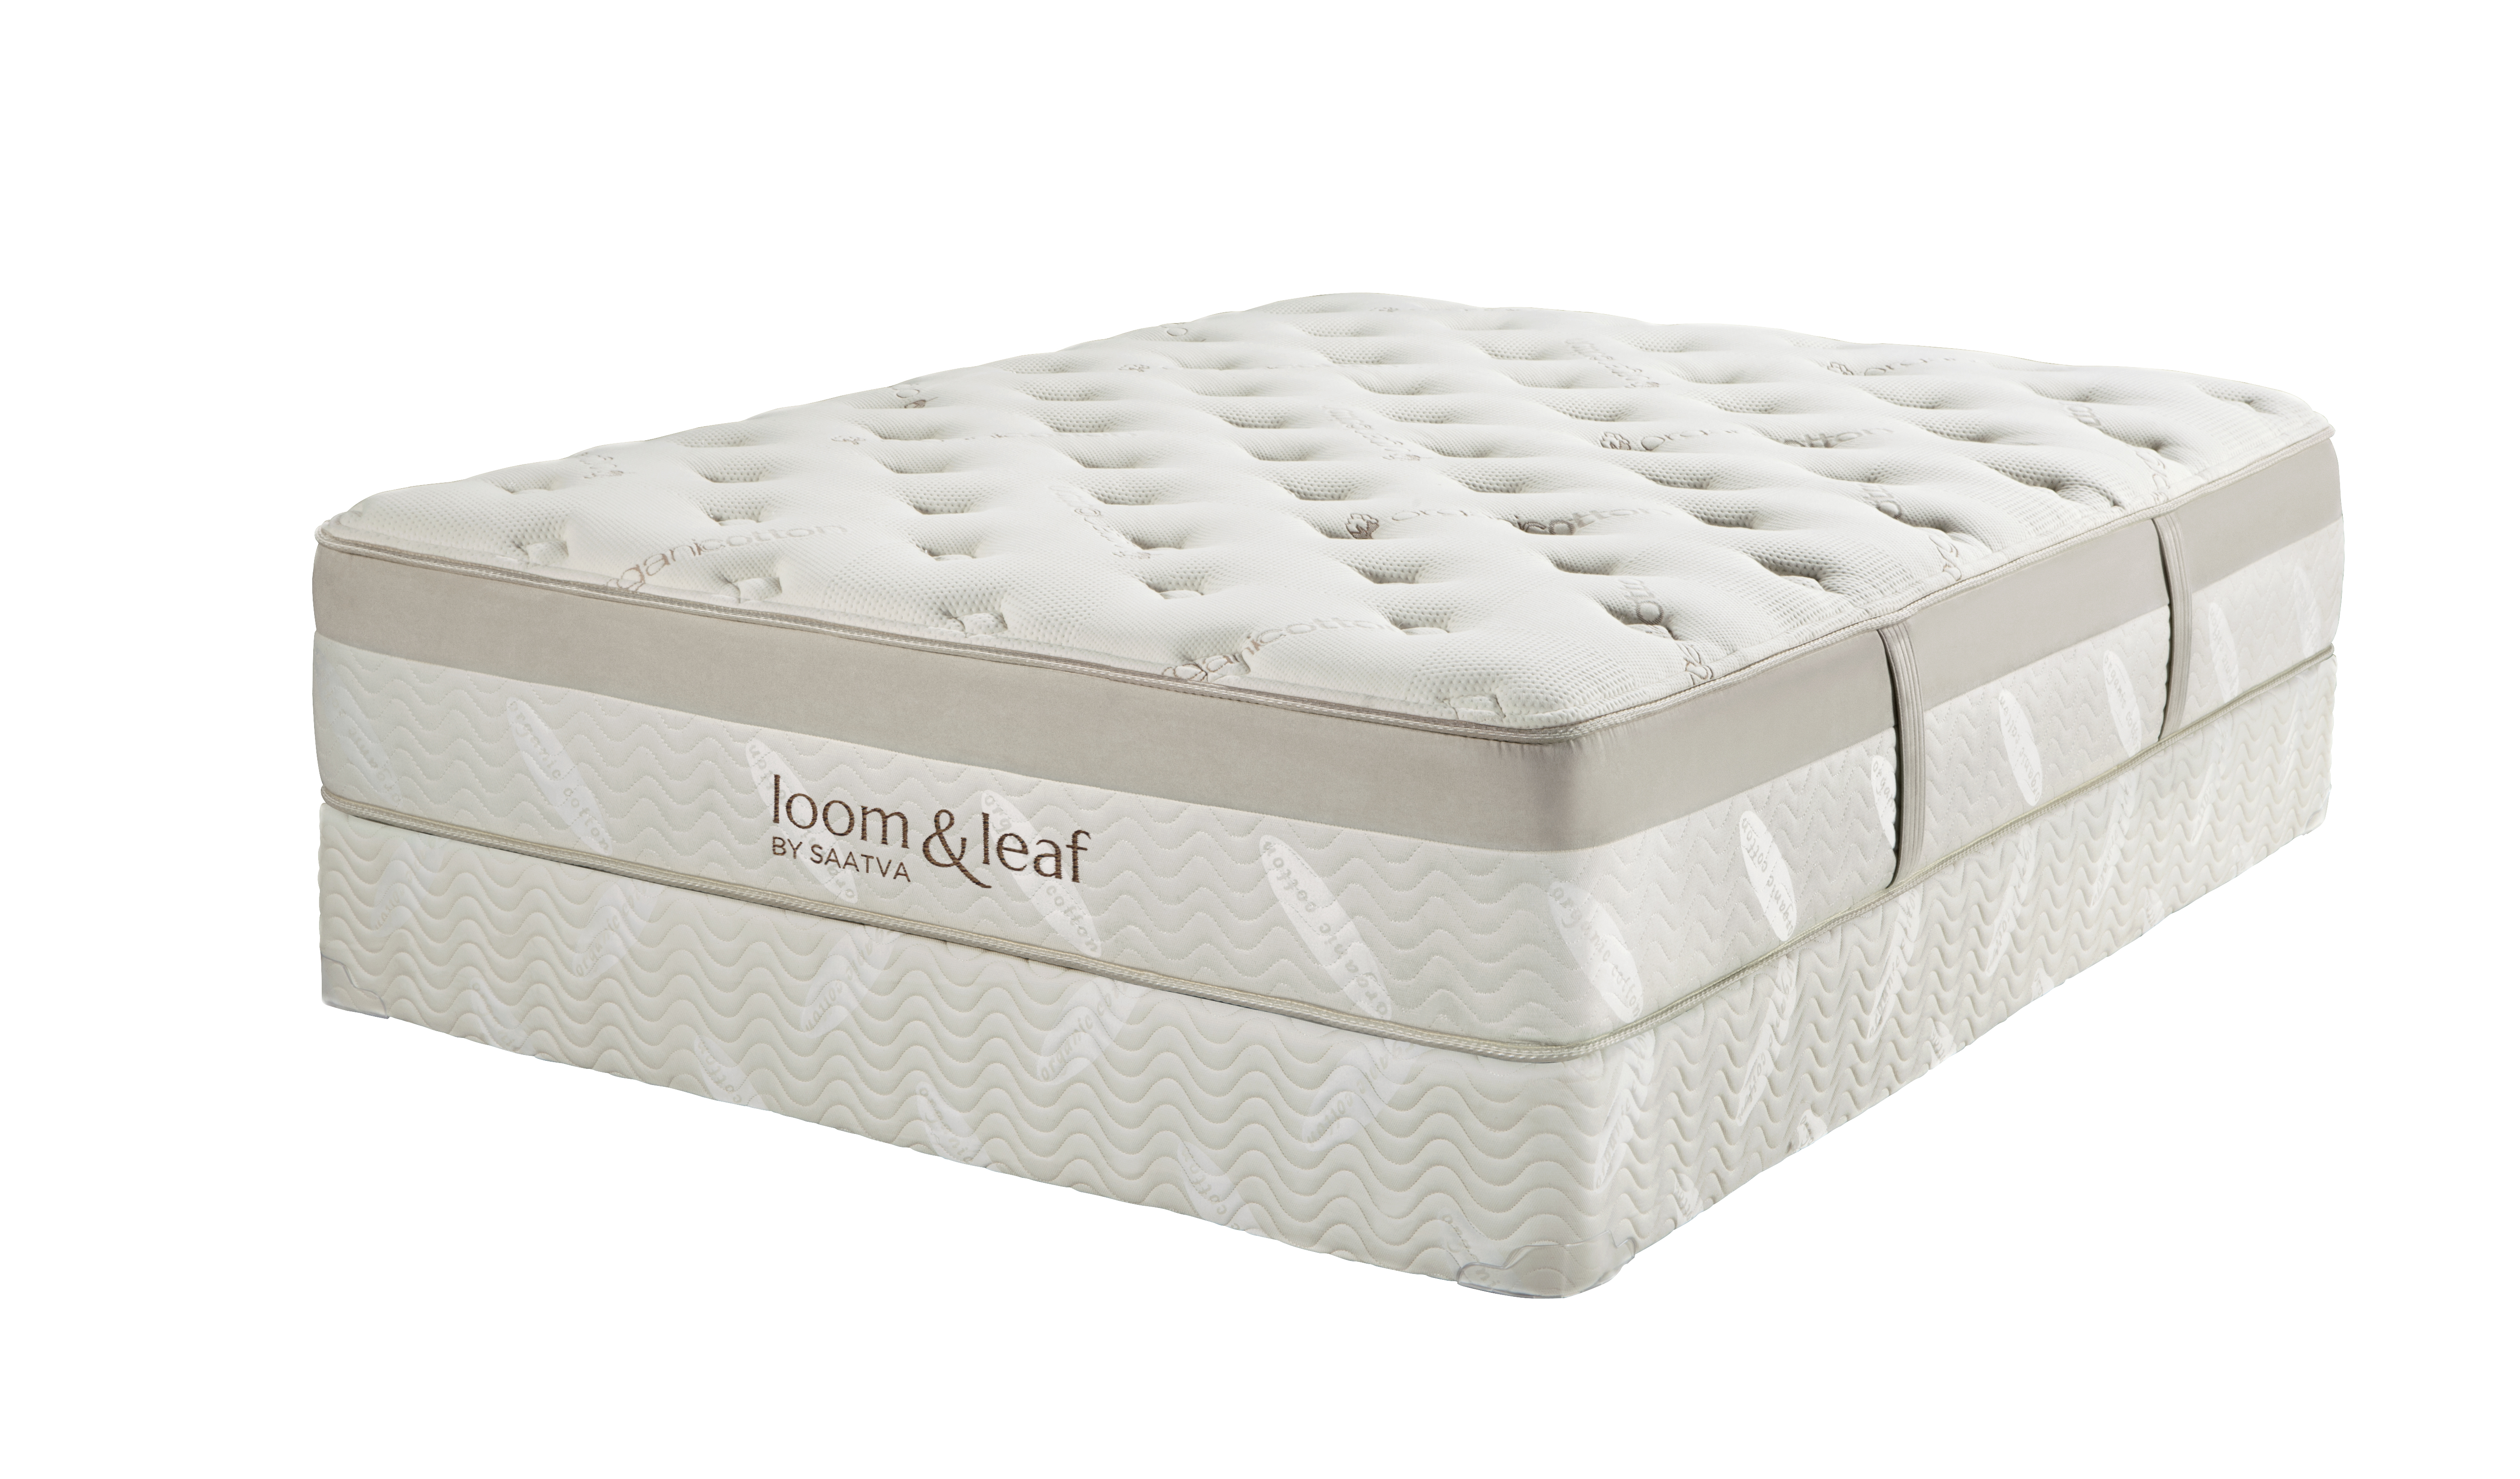 Loom and Leaf mattress review, Loom and Leaf reviews, Loom and Leaf review, Loom & Leaf